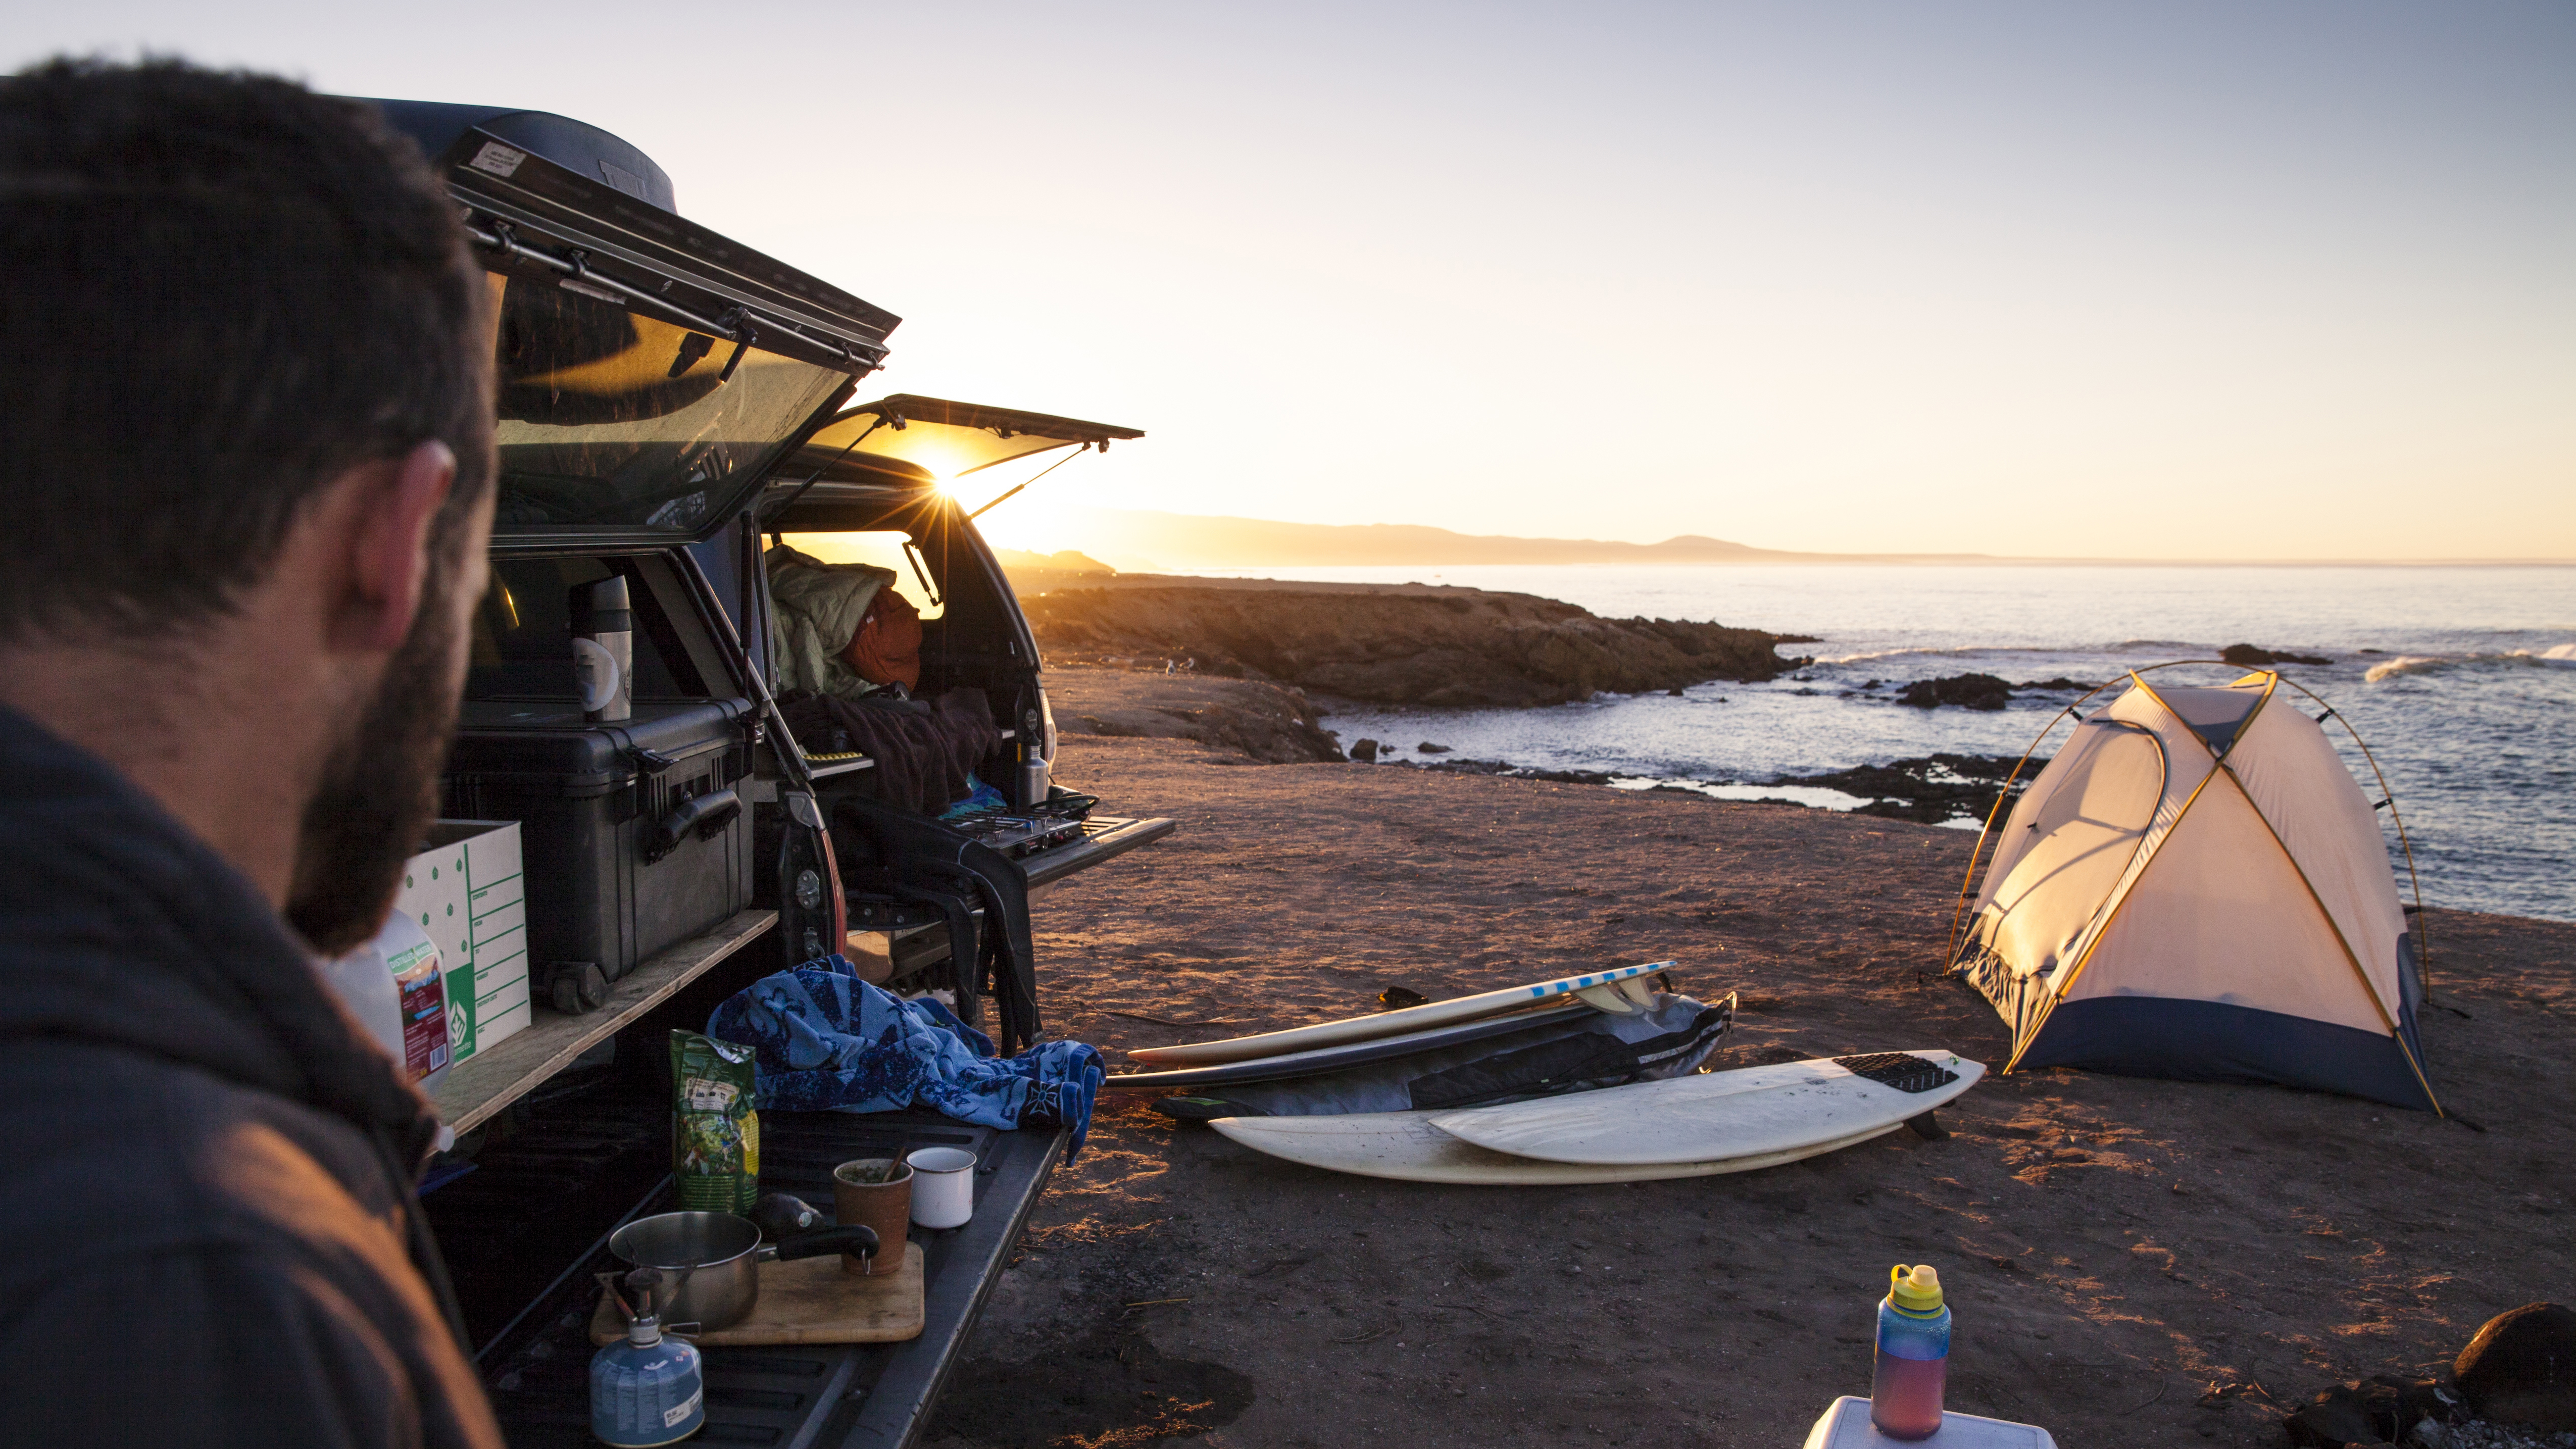 The Essentials: 5 Must-have Items for Car Camping